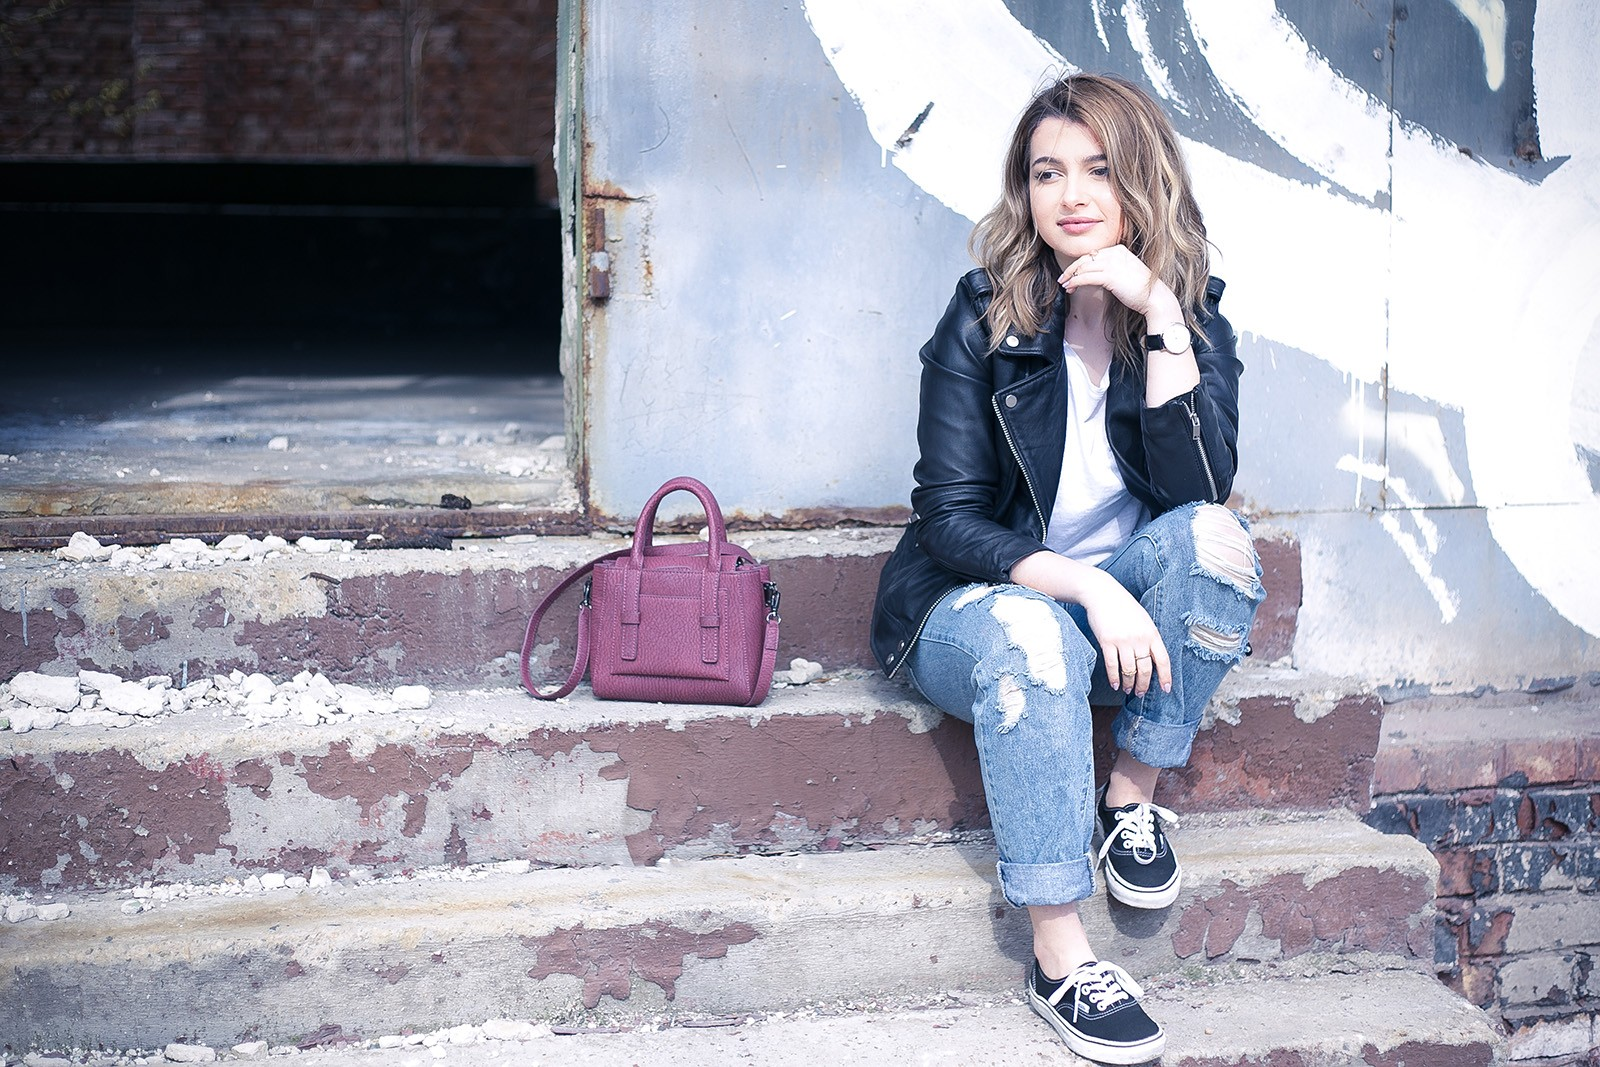 denisaismam-leather-jacket-boyfriend-jeans-burgundy-bag_1965-Edit